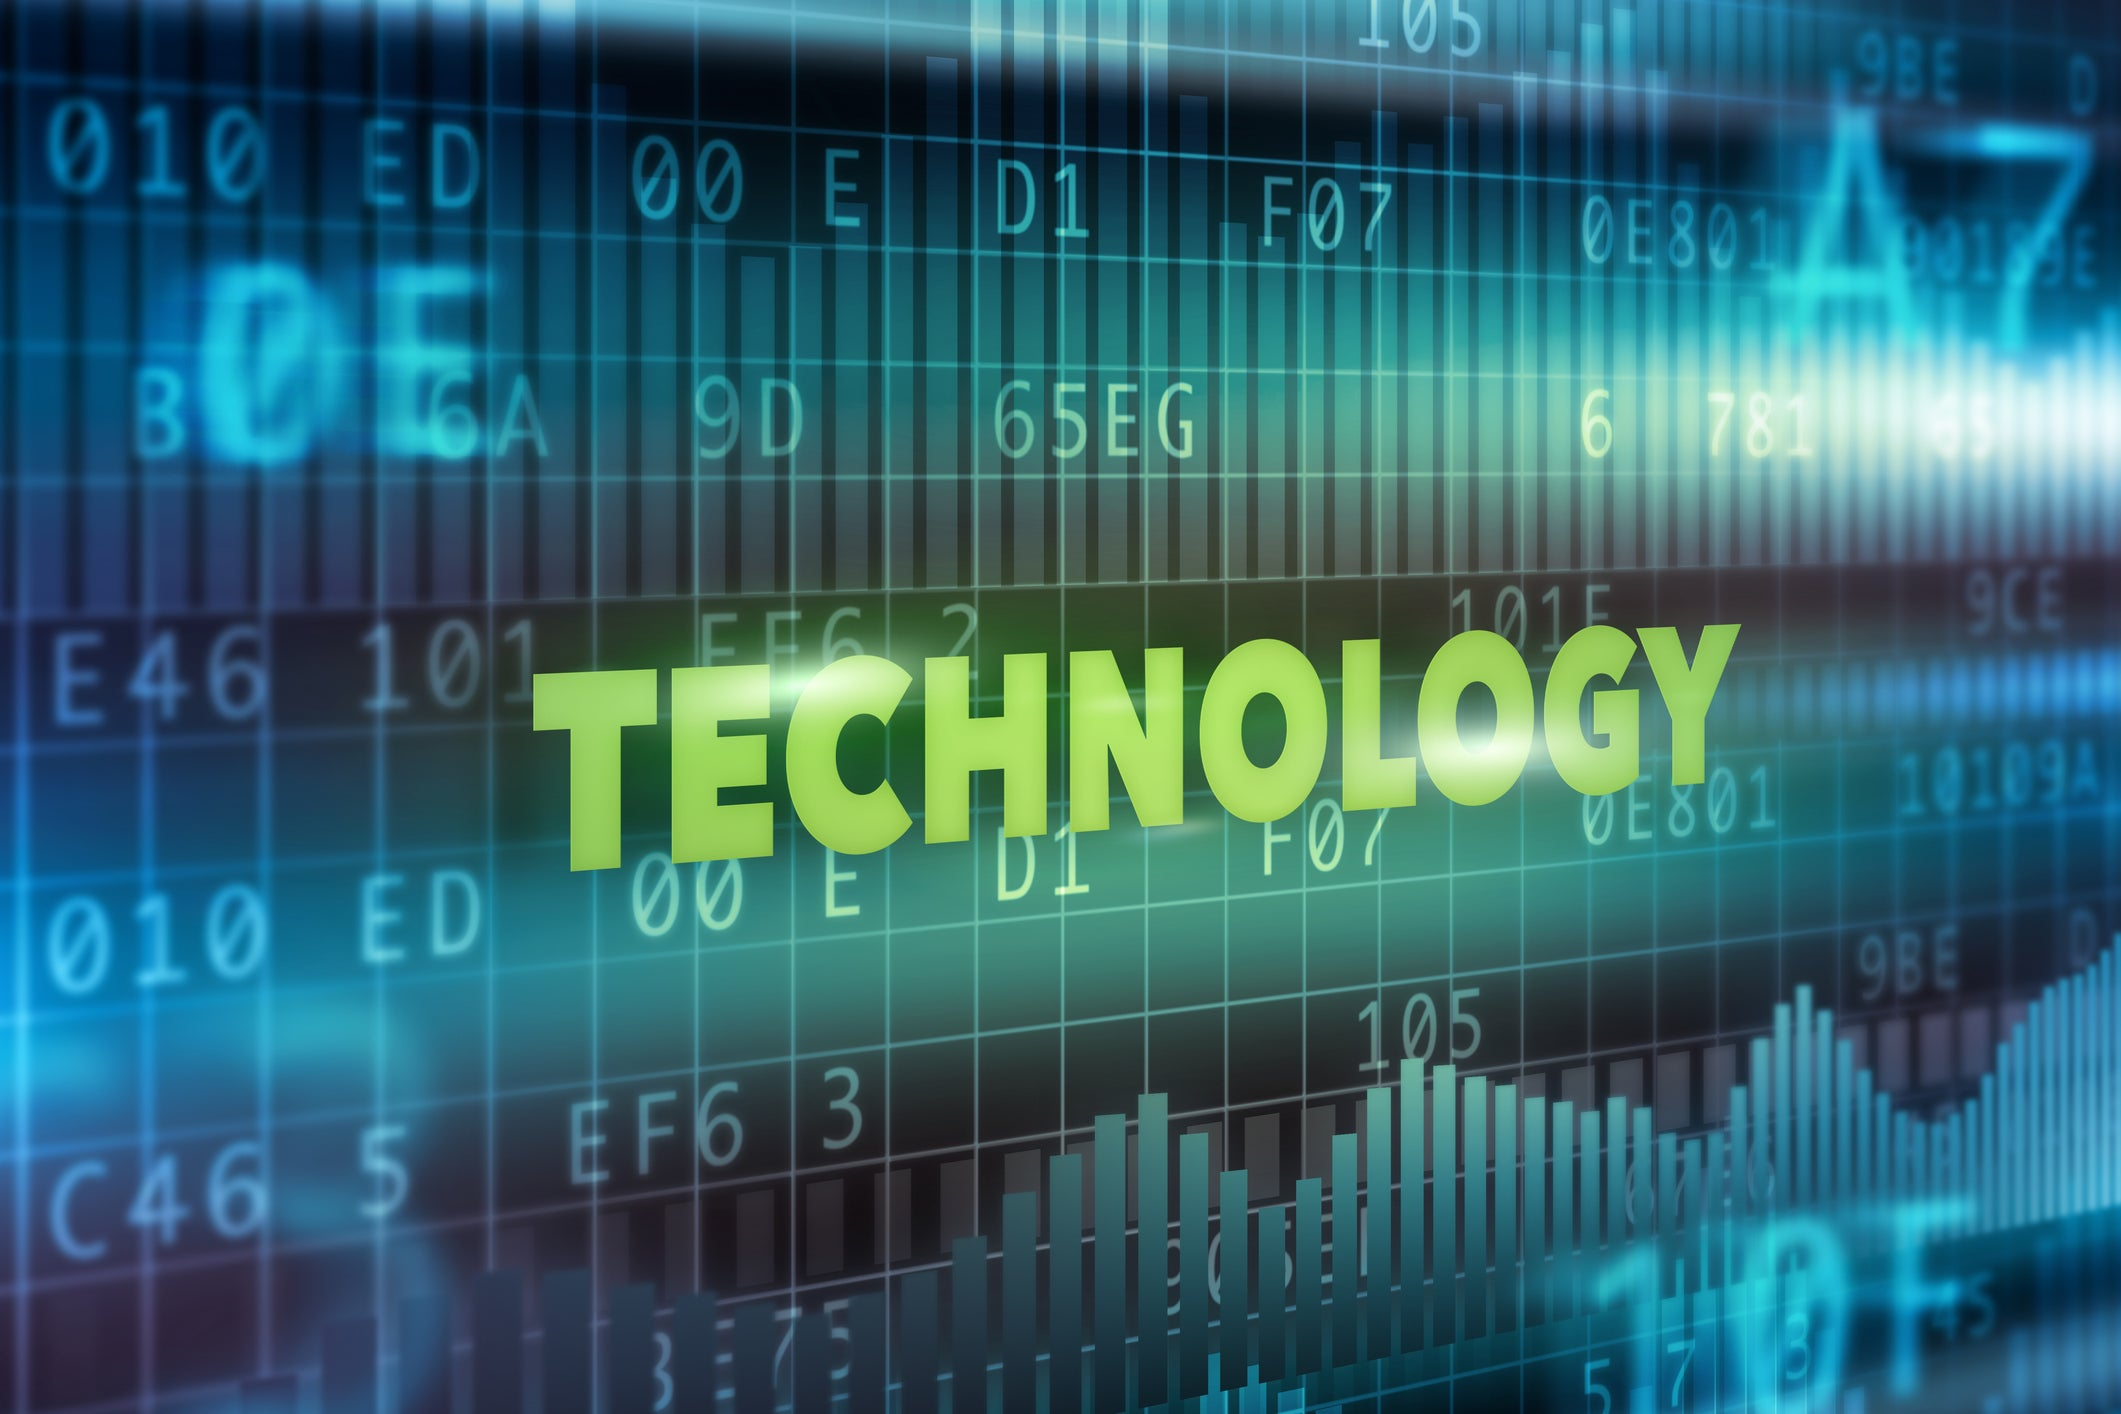 Tech Stocks This Week: Microsoft's Acquisition, DocuSign's